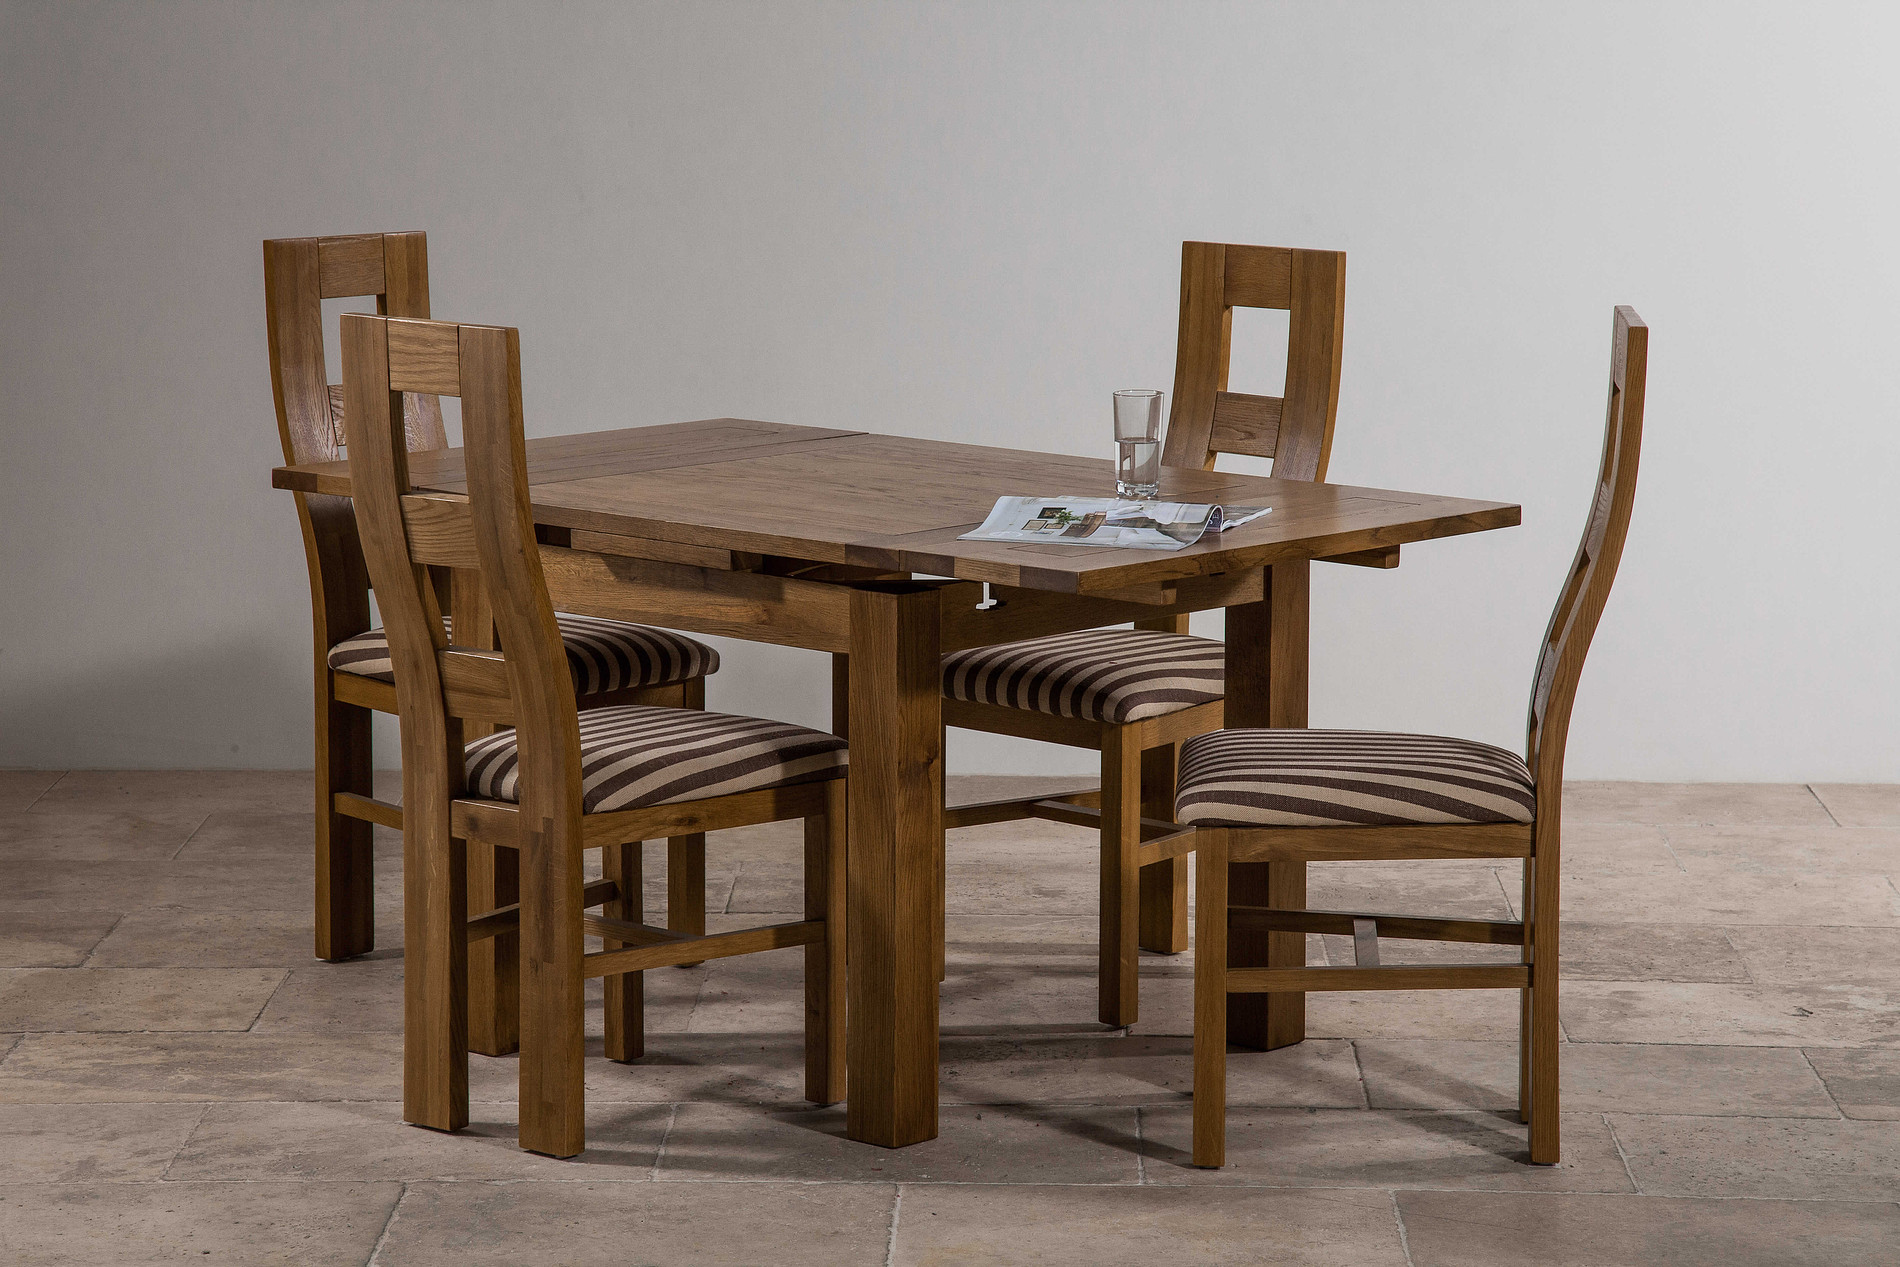 3ft x 3ft Rustic Solid Oak Extending Dining Table Seats  : 3ft x 3ft rustic solid oak extending dining table seats up to 6 people extended 4 wave back rustic solid oak and brown striped fabric dining chair 543d26f1344ab from oakfurnitureland.co.uk size 1900 x 1267 jpeg 569kB